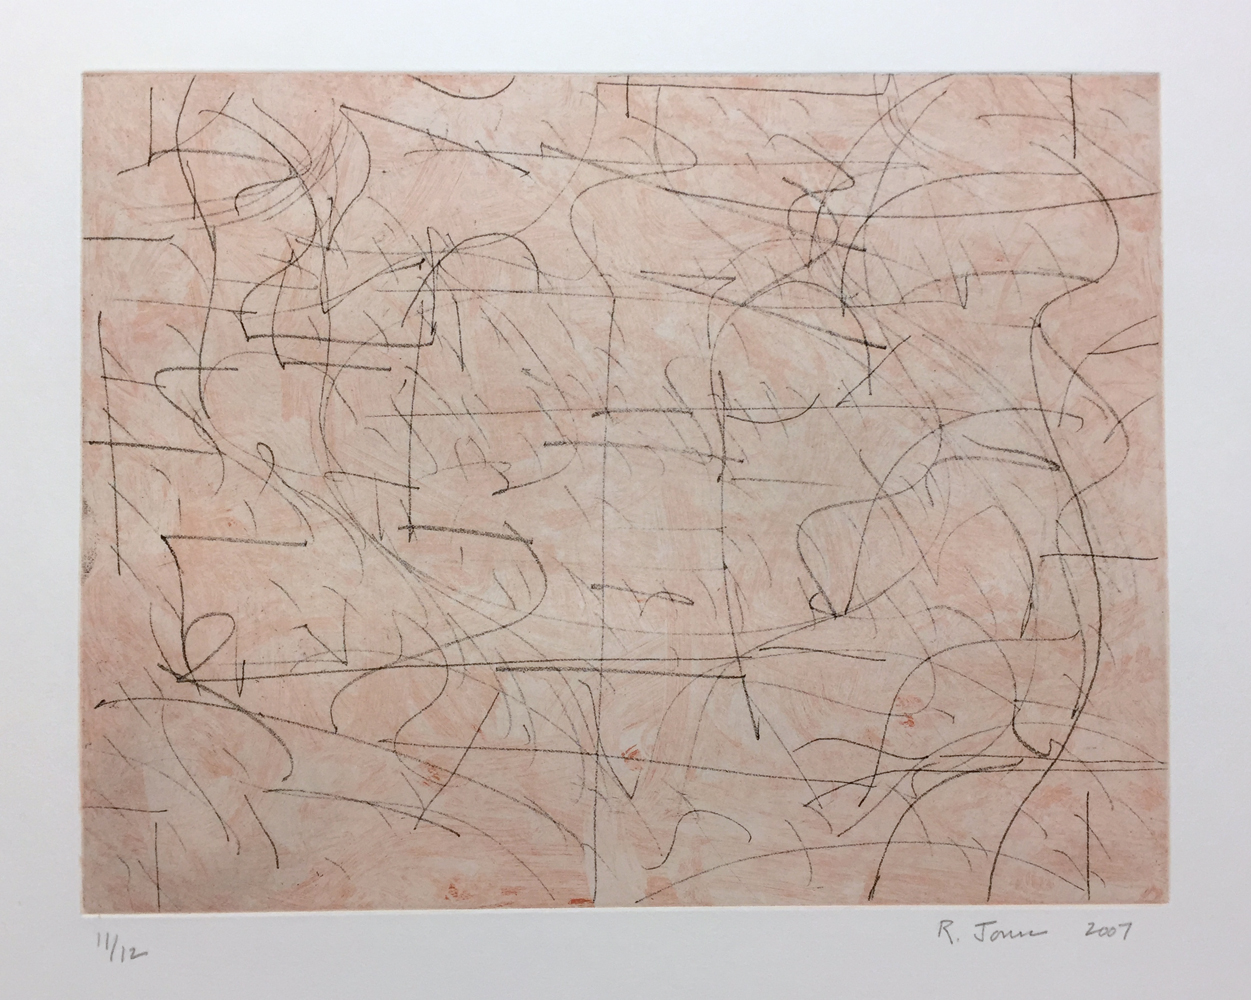 Robert C. Jones, Untitled, 2007, etching, paper size: 18.75 x 19.75 inches, print size: 7.75 x 10.25 inches, edition of 12, printed by Beta Press, $600.